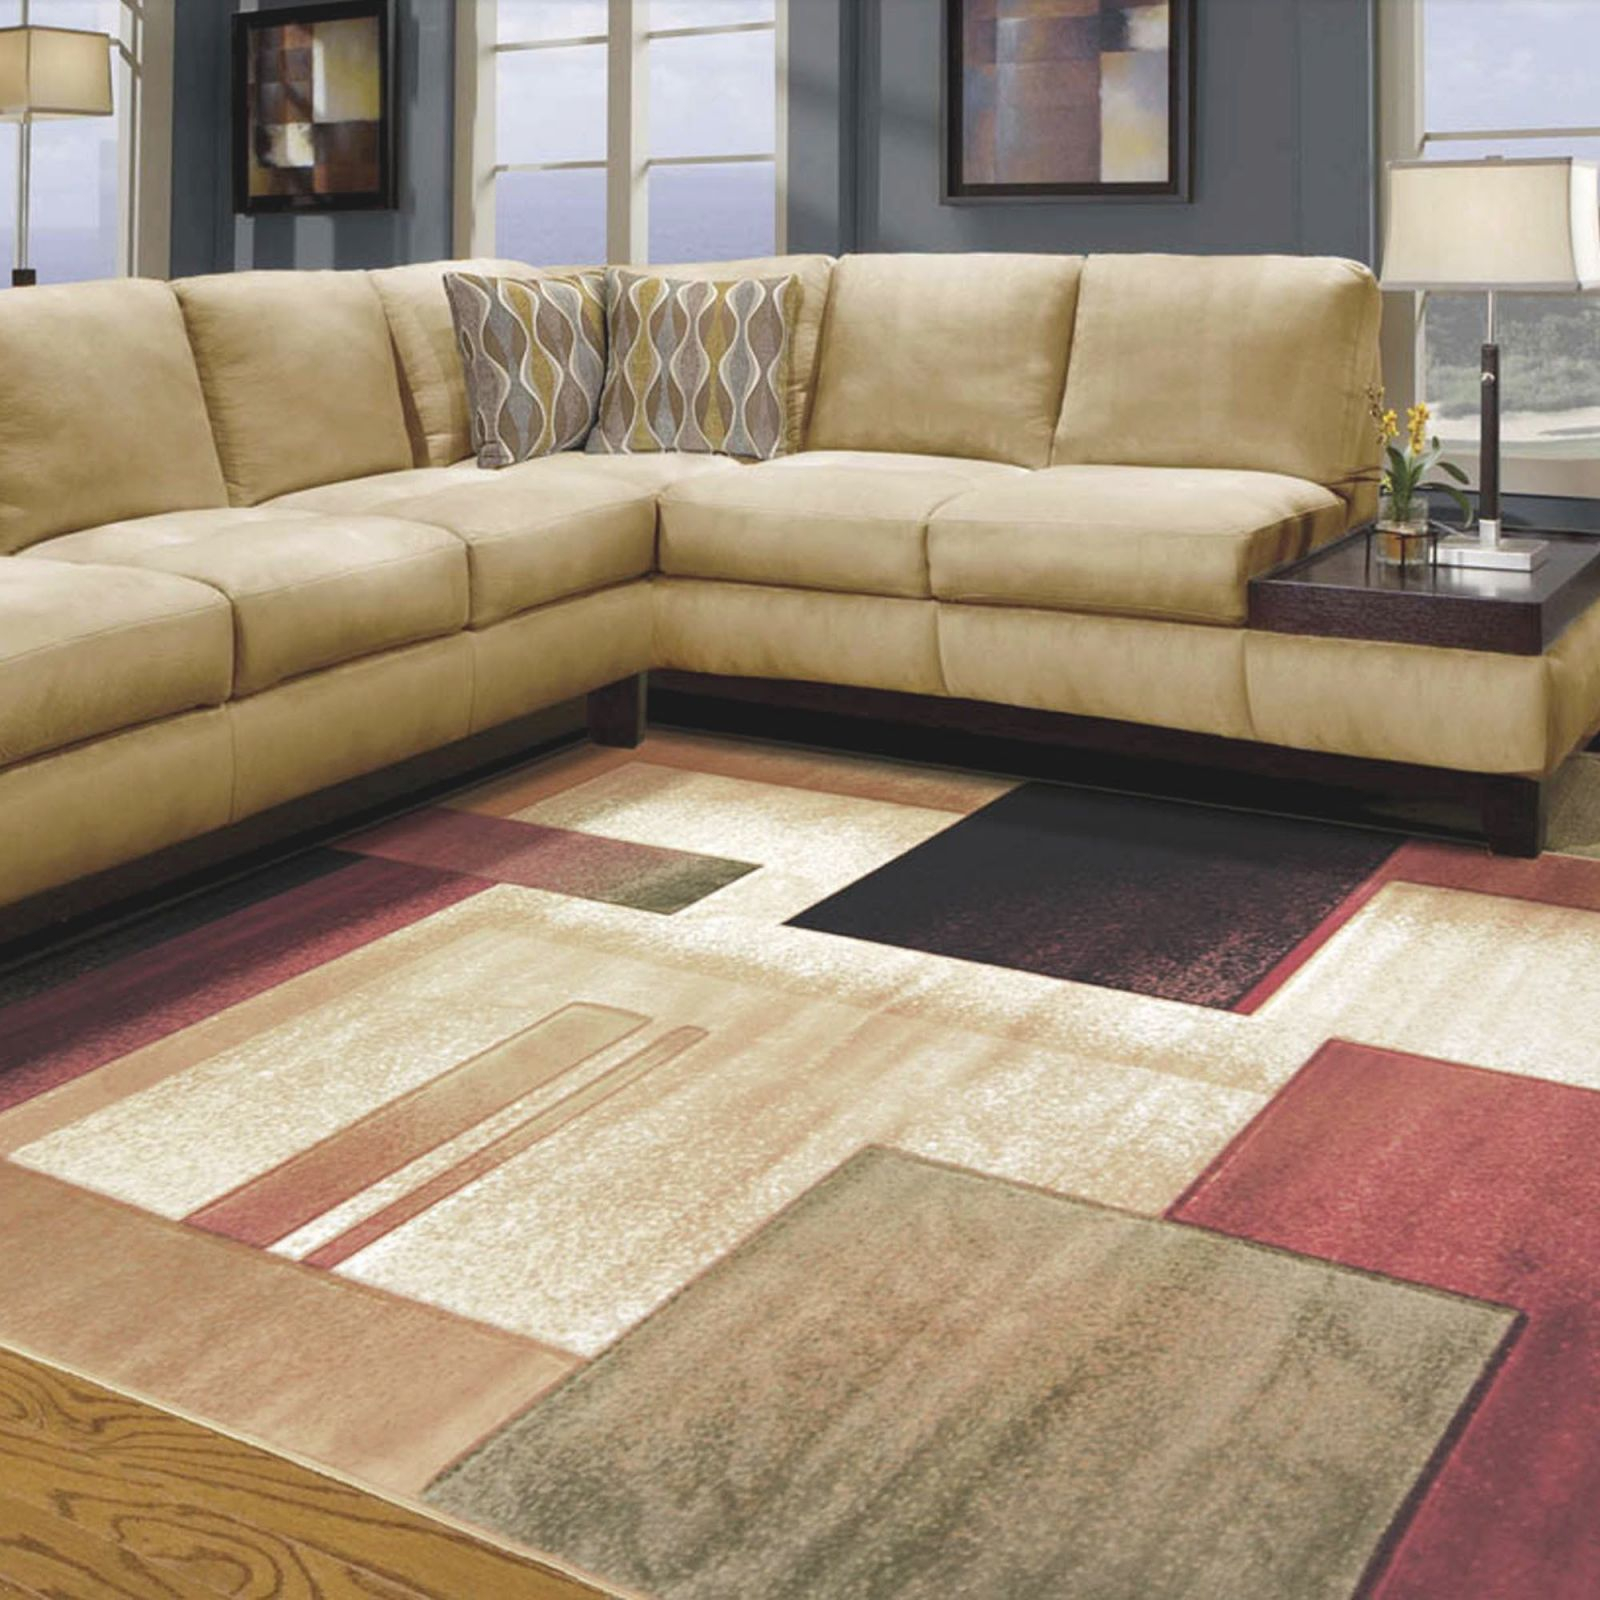 Ways To Style A Room With Room Rugs | Rugs In Living Room for Awesome Ideas For Big Area Rugs For Living Room